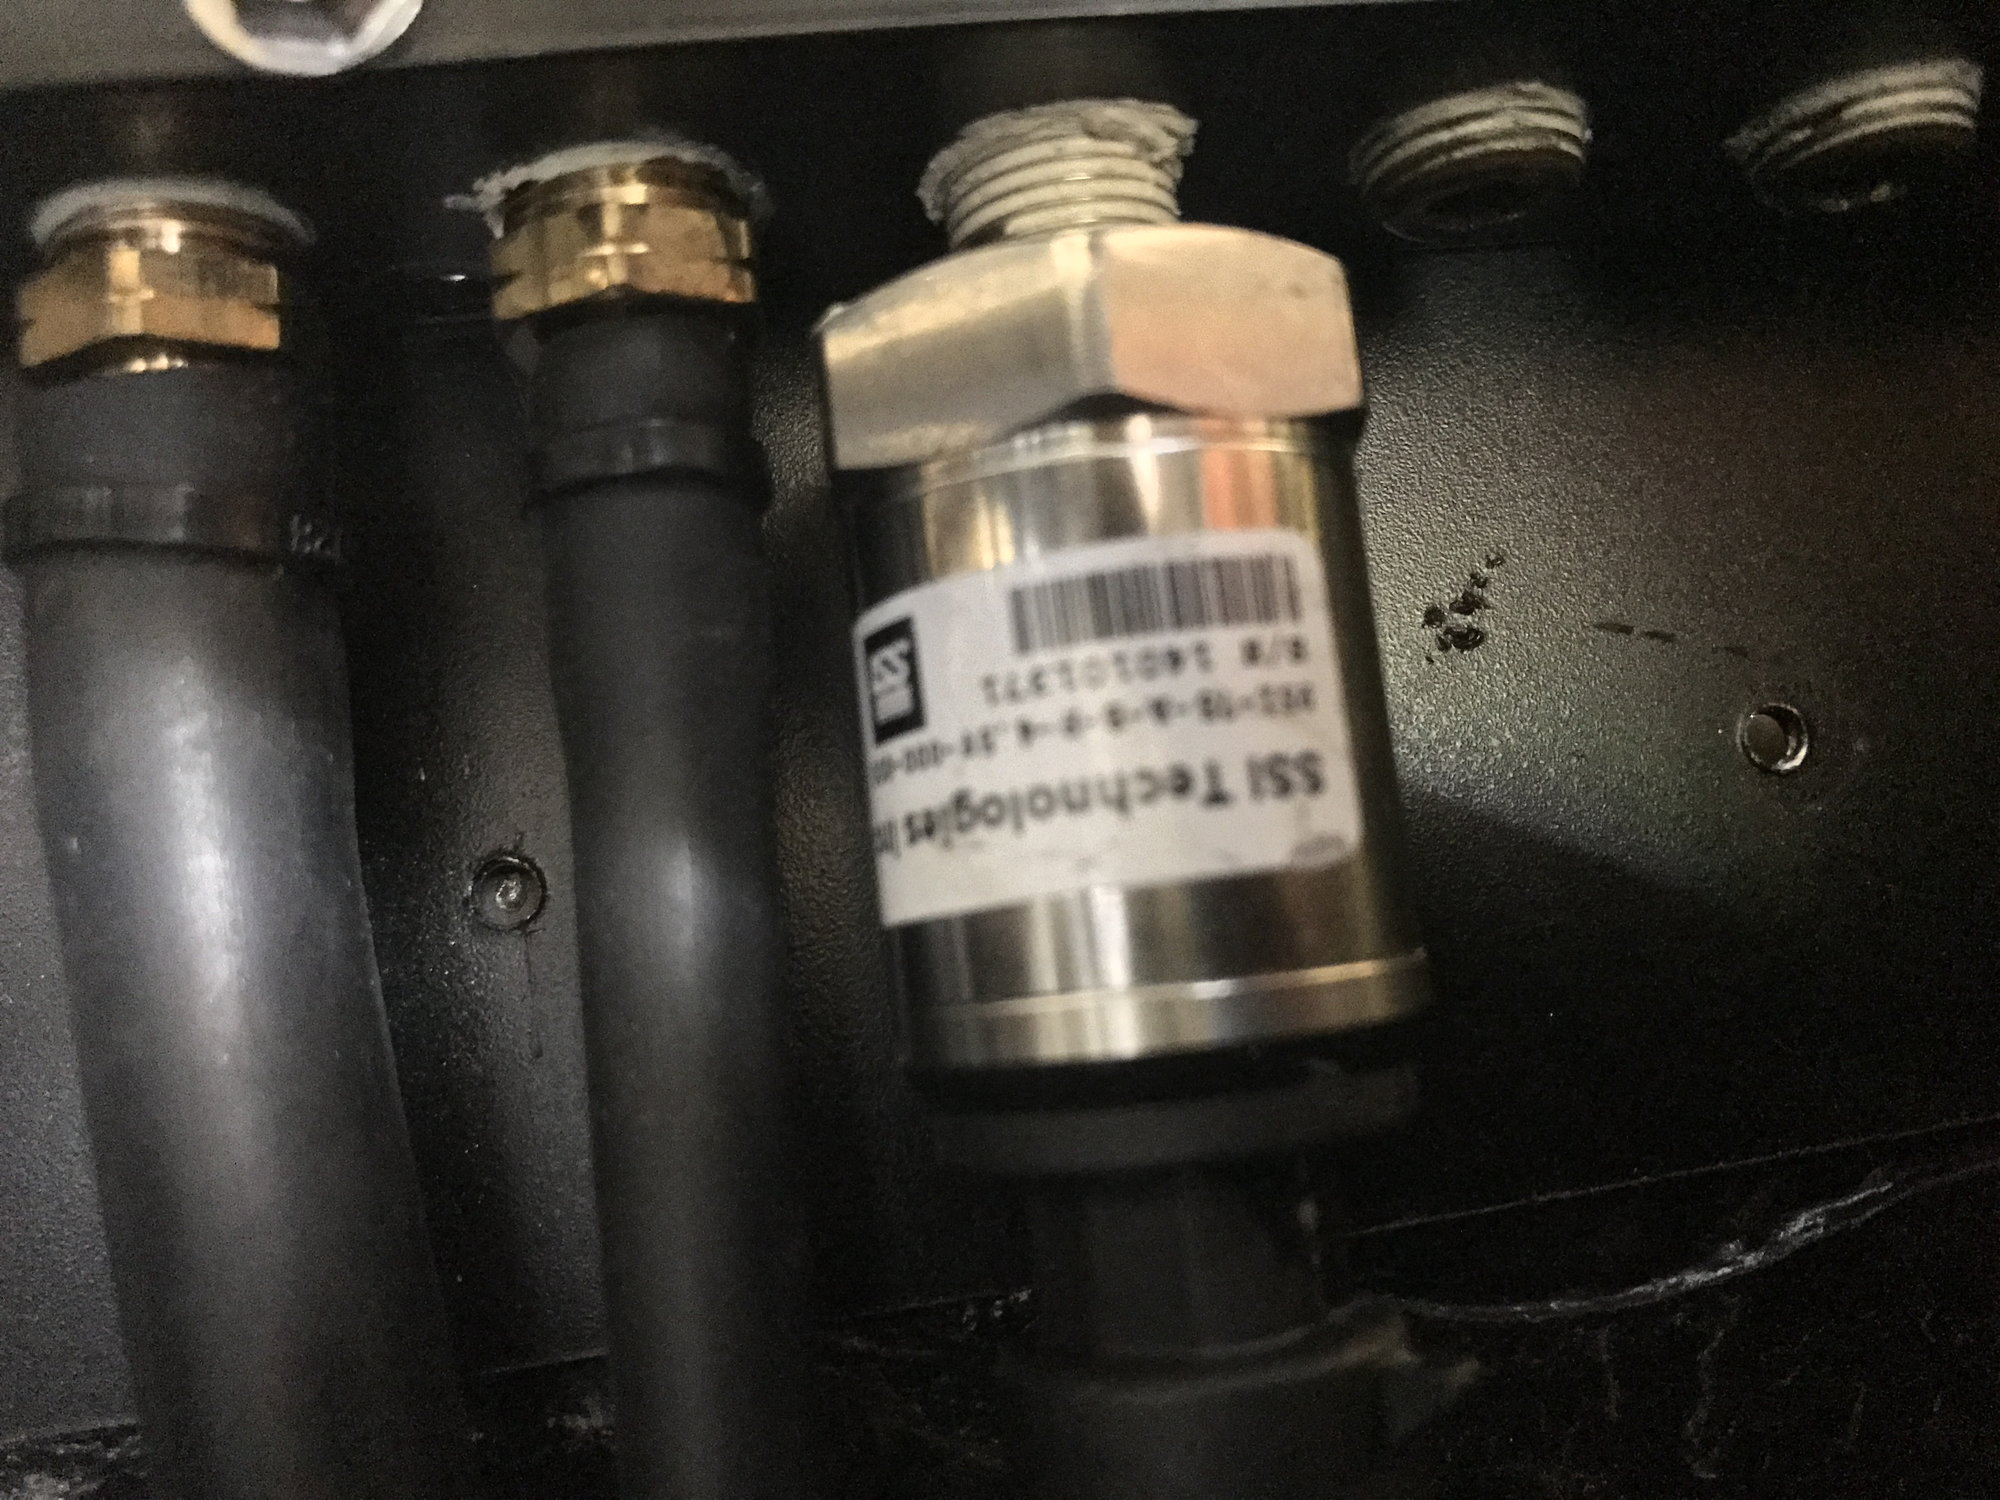 hight resolution of i had the exact same issue with that particular sensor i run the holley system so i ended up going with their 5 bar it looks like a pressure transducer